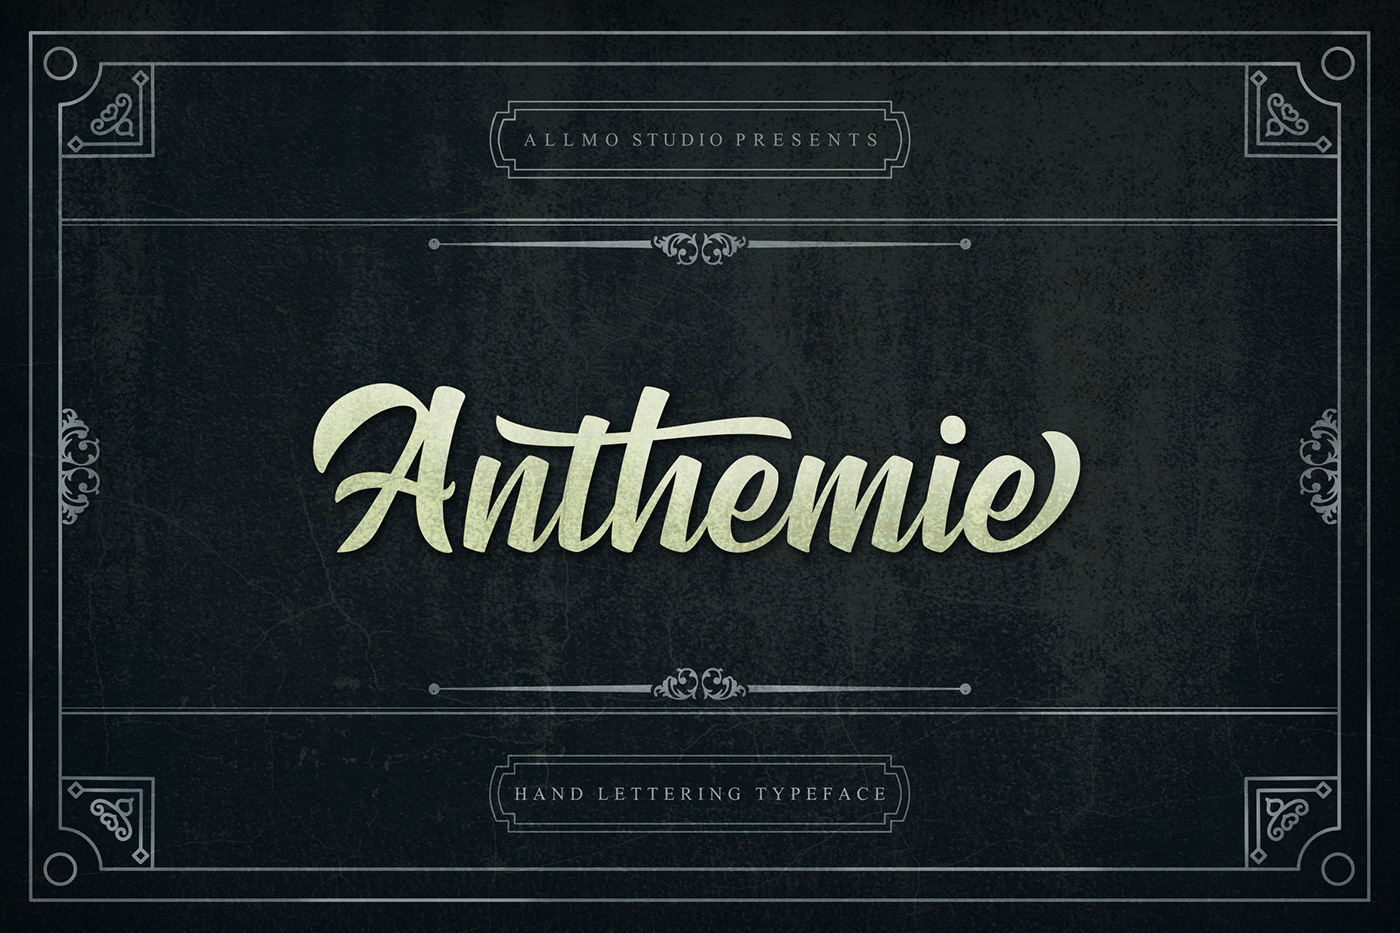 Calligraphy   Typeface lettering HAND LETTERING font